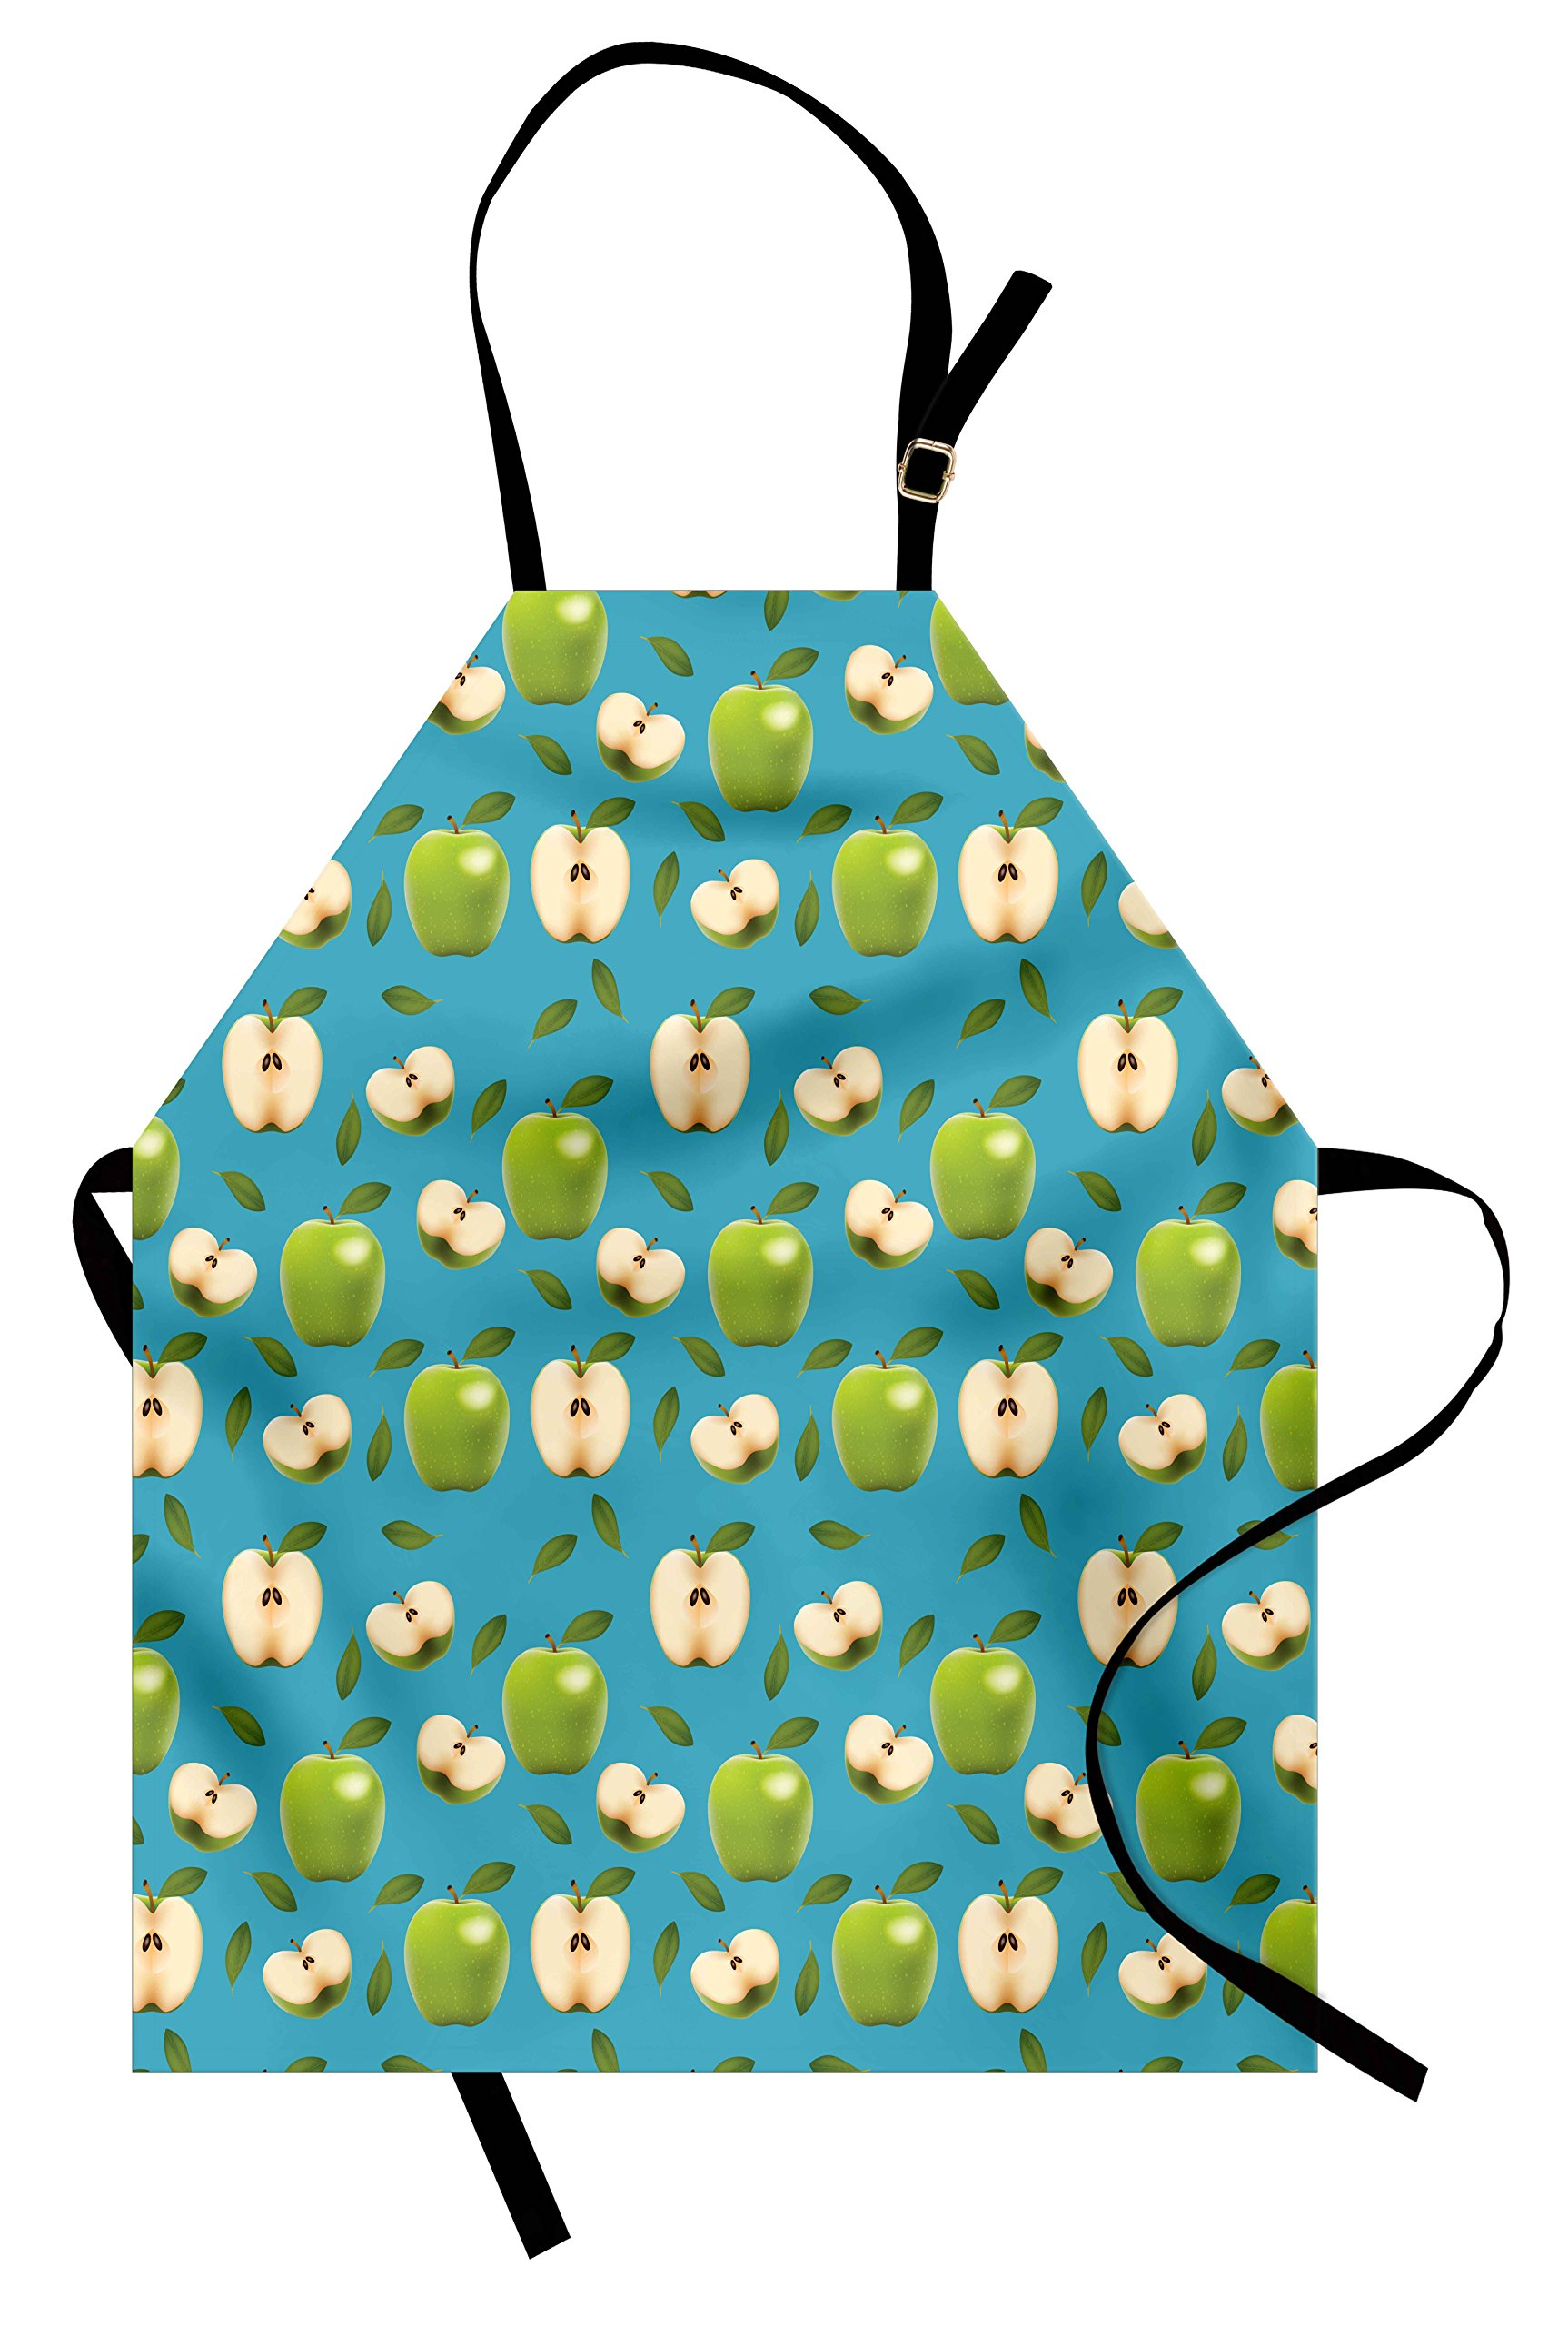 Ambesonne Apple Apron, Fresh Granny Smith Apples Raw Fruit Ornamental Harvest Winter Season Produces, Unisex Kitchen Bib Apron with Adjustable Neck for Cooking Baking Gardening, Apple Green Teal